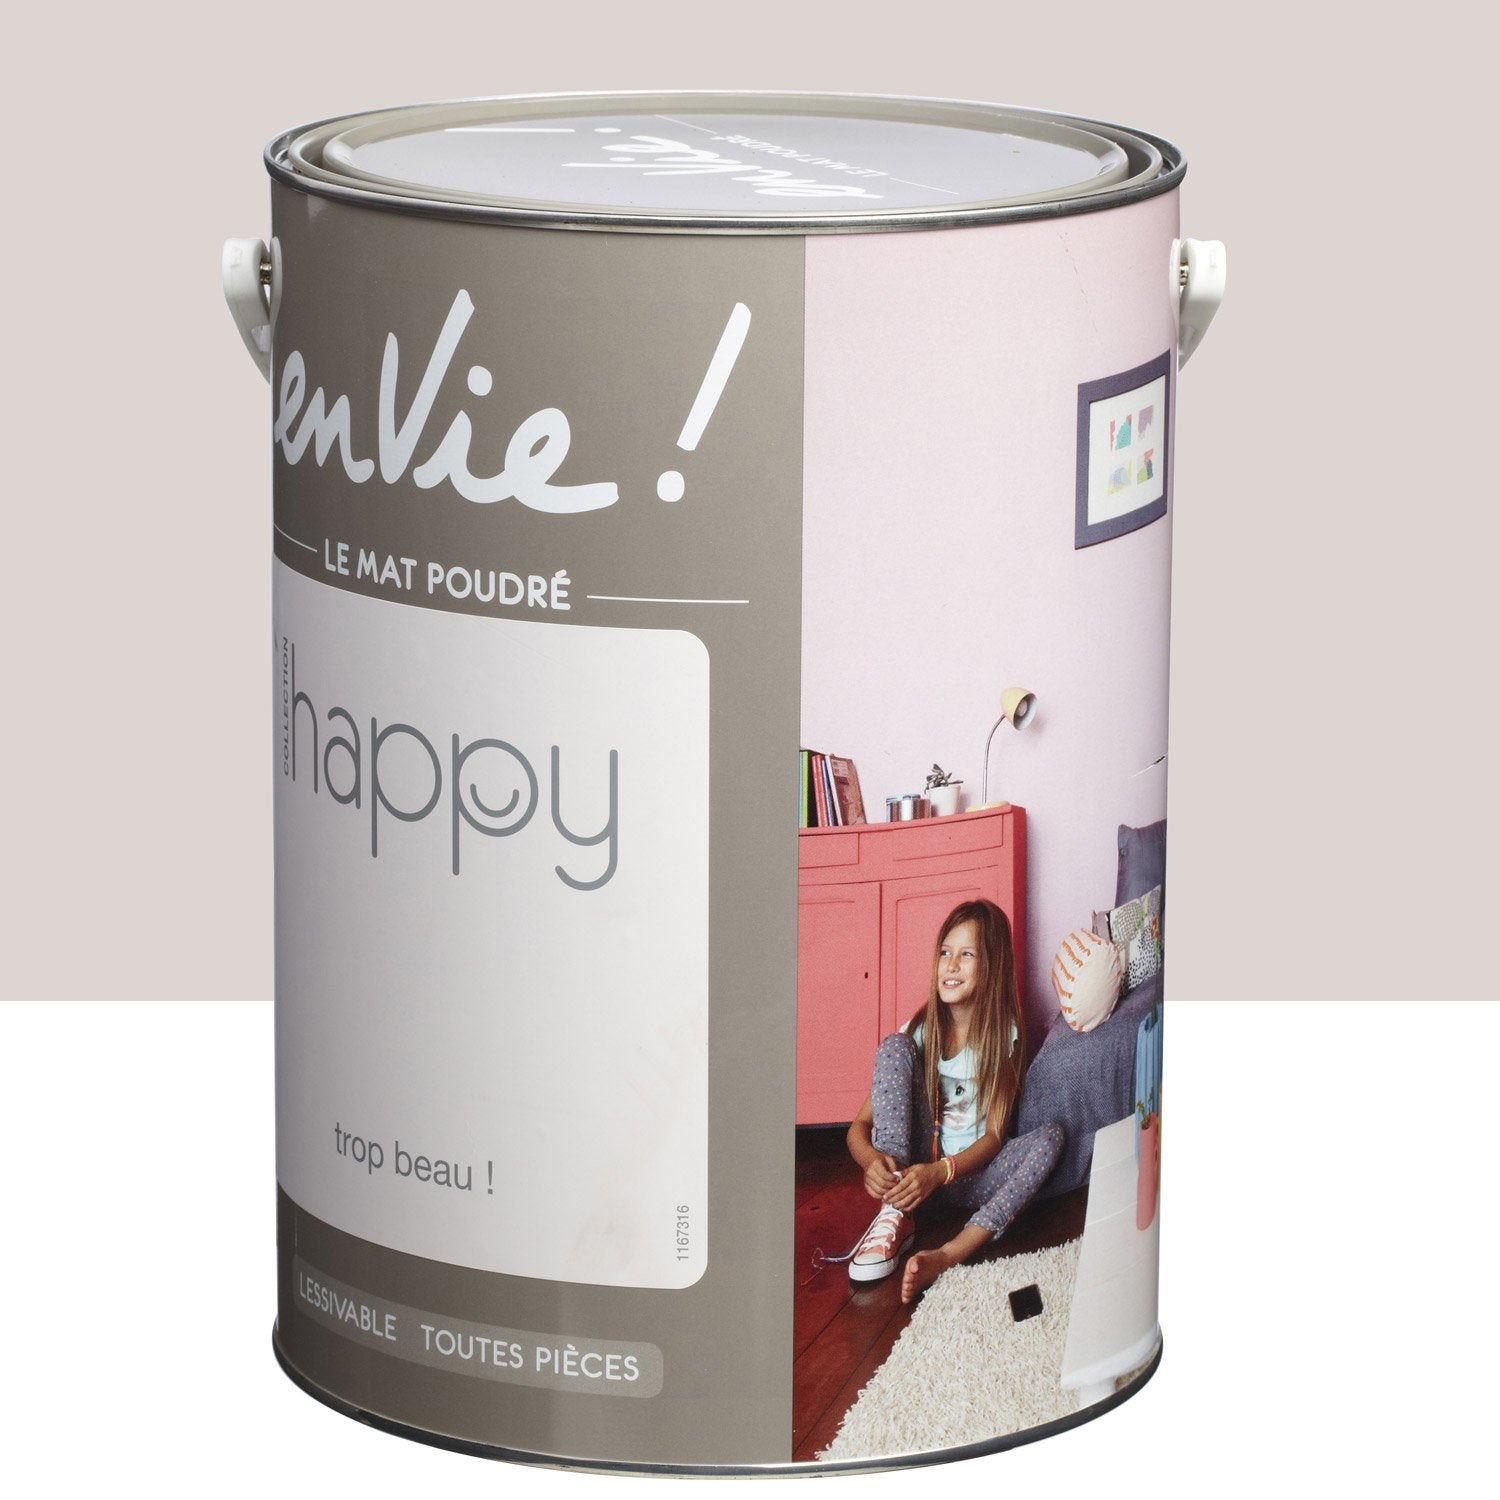 Peinture gris trop beau luxens envie collection happy 5 l leroy merlin - Peinture envie leroy merlin ...